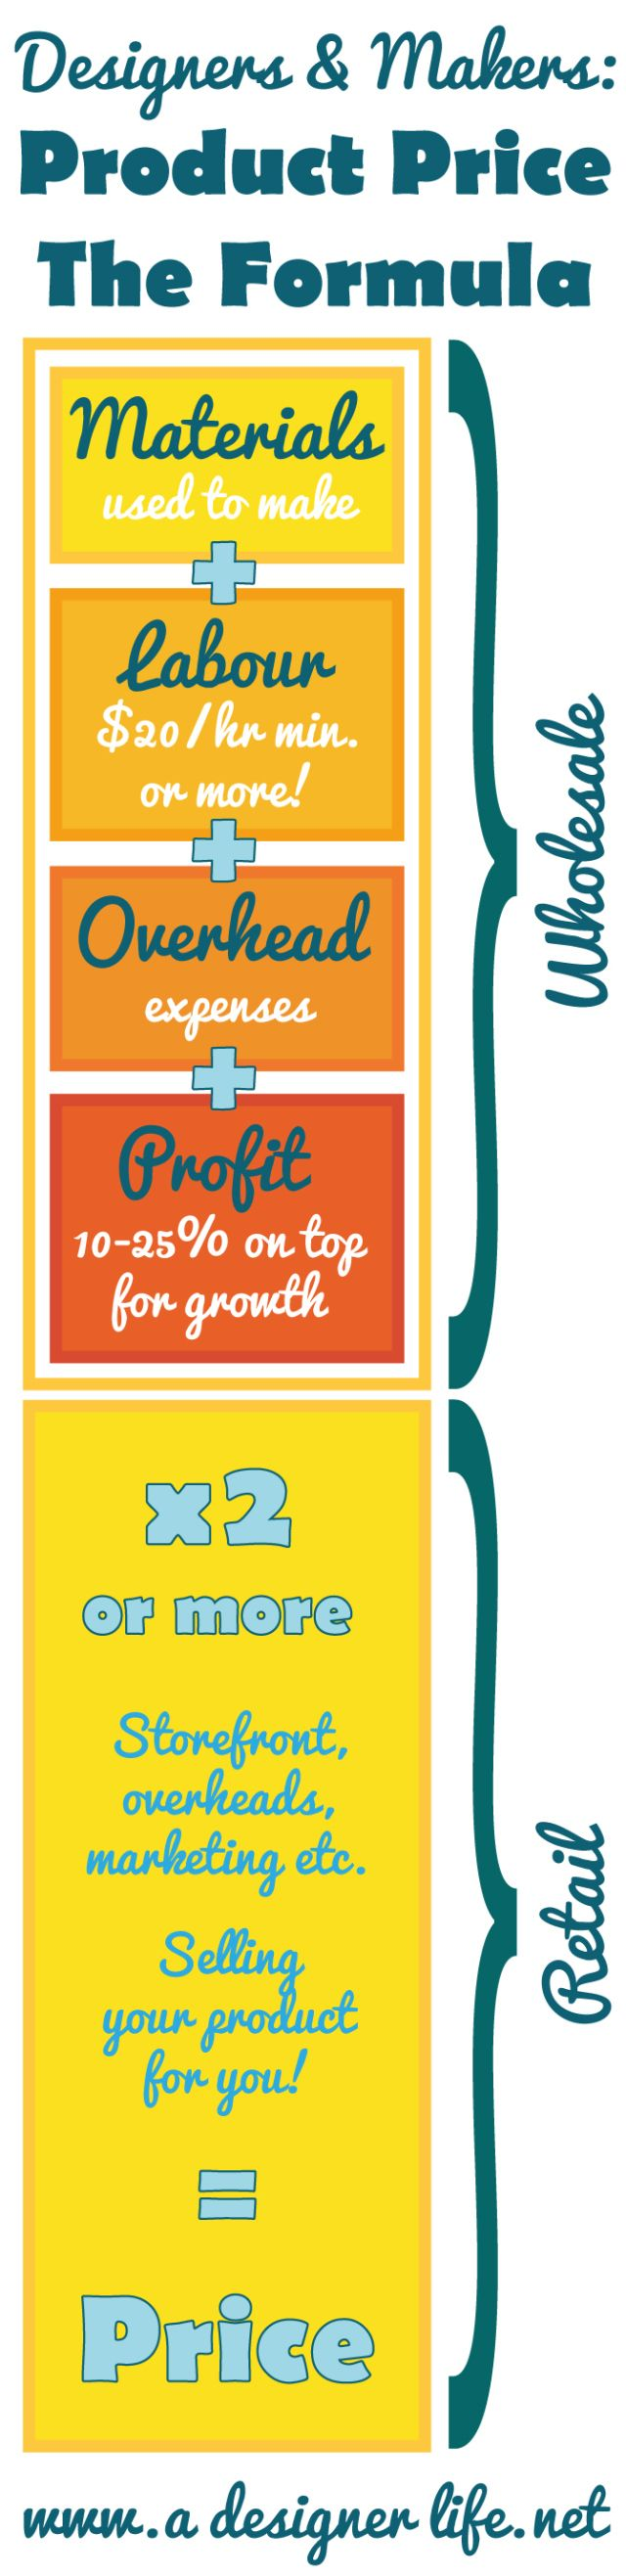 How do I price my product? The ultimate product pricing formula for designers and makers - A Designer Life